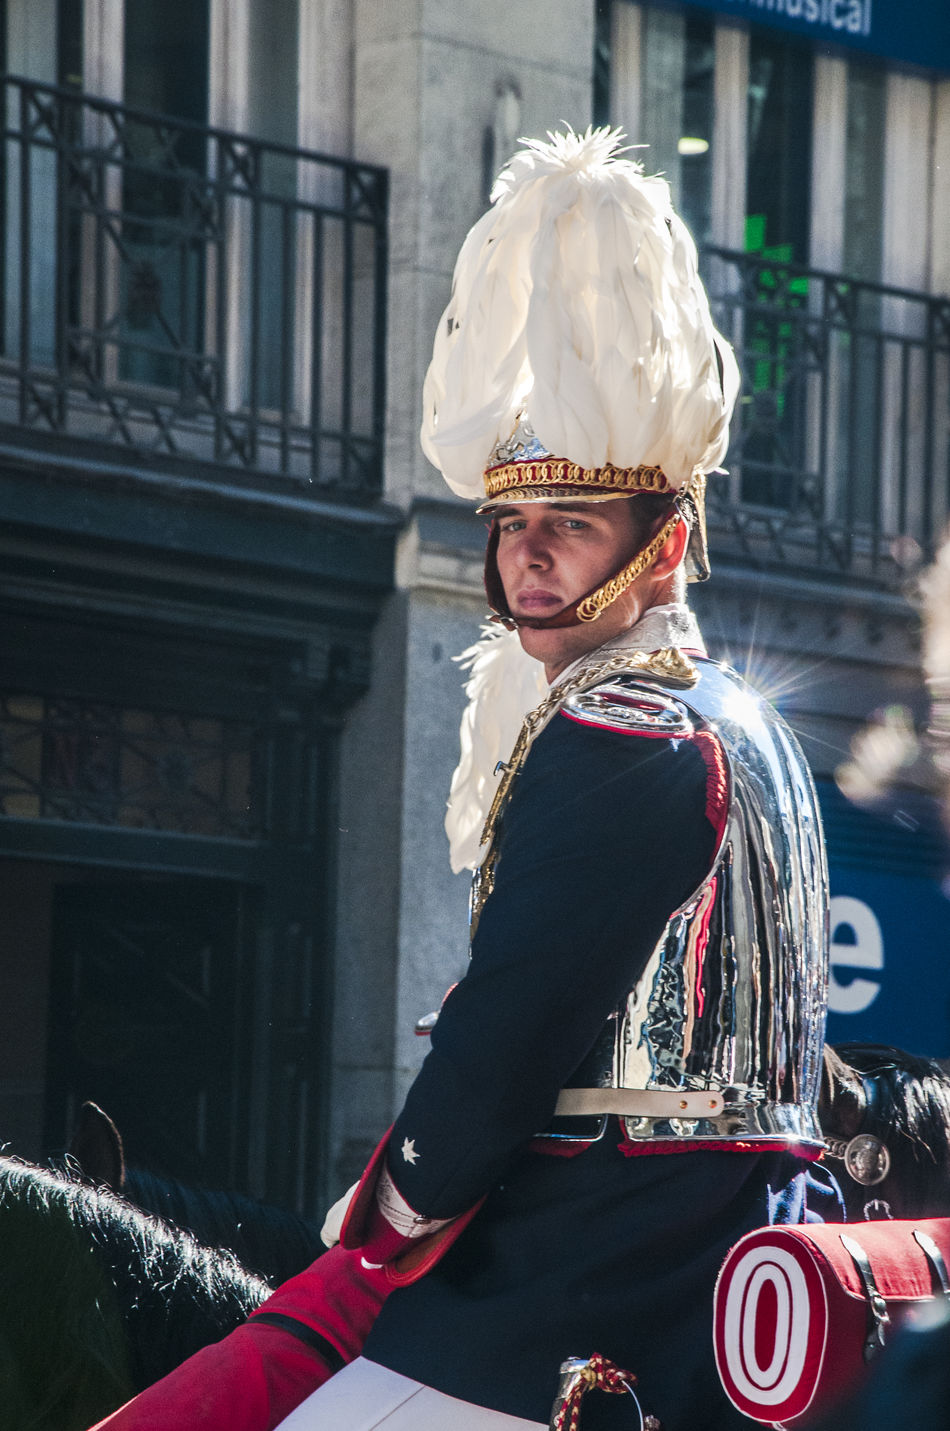 Half view of a mounted cavalery soldier in full ceremonial uniform. Adult Cavalry Cavalry Soldier Day Editorial  Guard Headwear Helmet Horse Horse Riding Horses Male Military Mounted News One Person People Street Uniform Uniforms